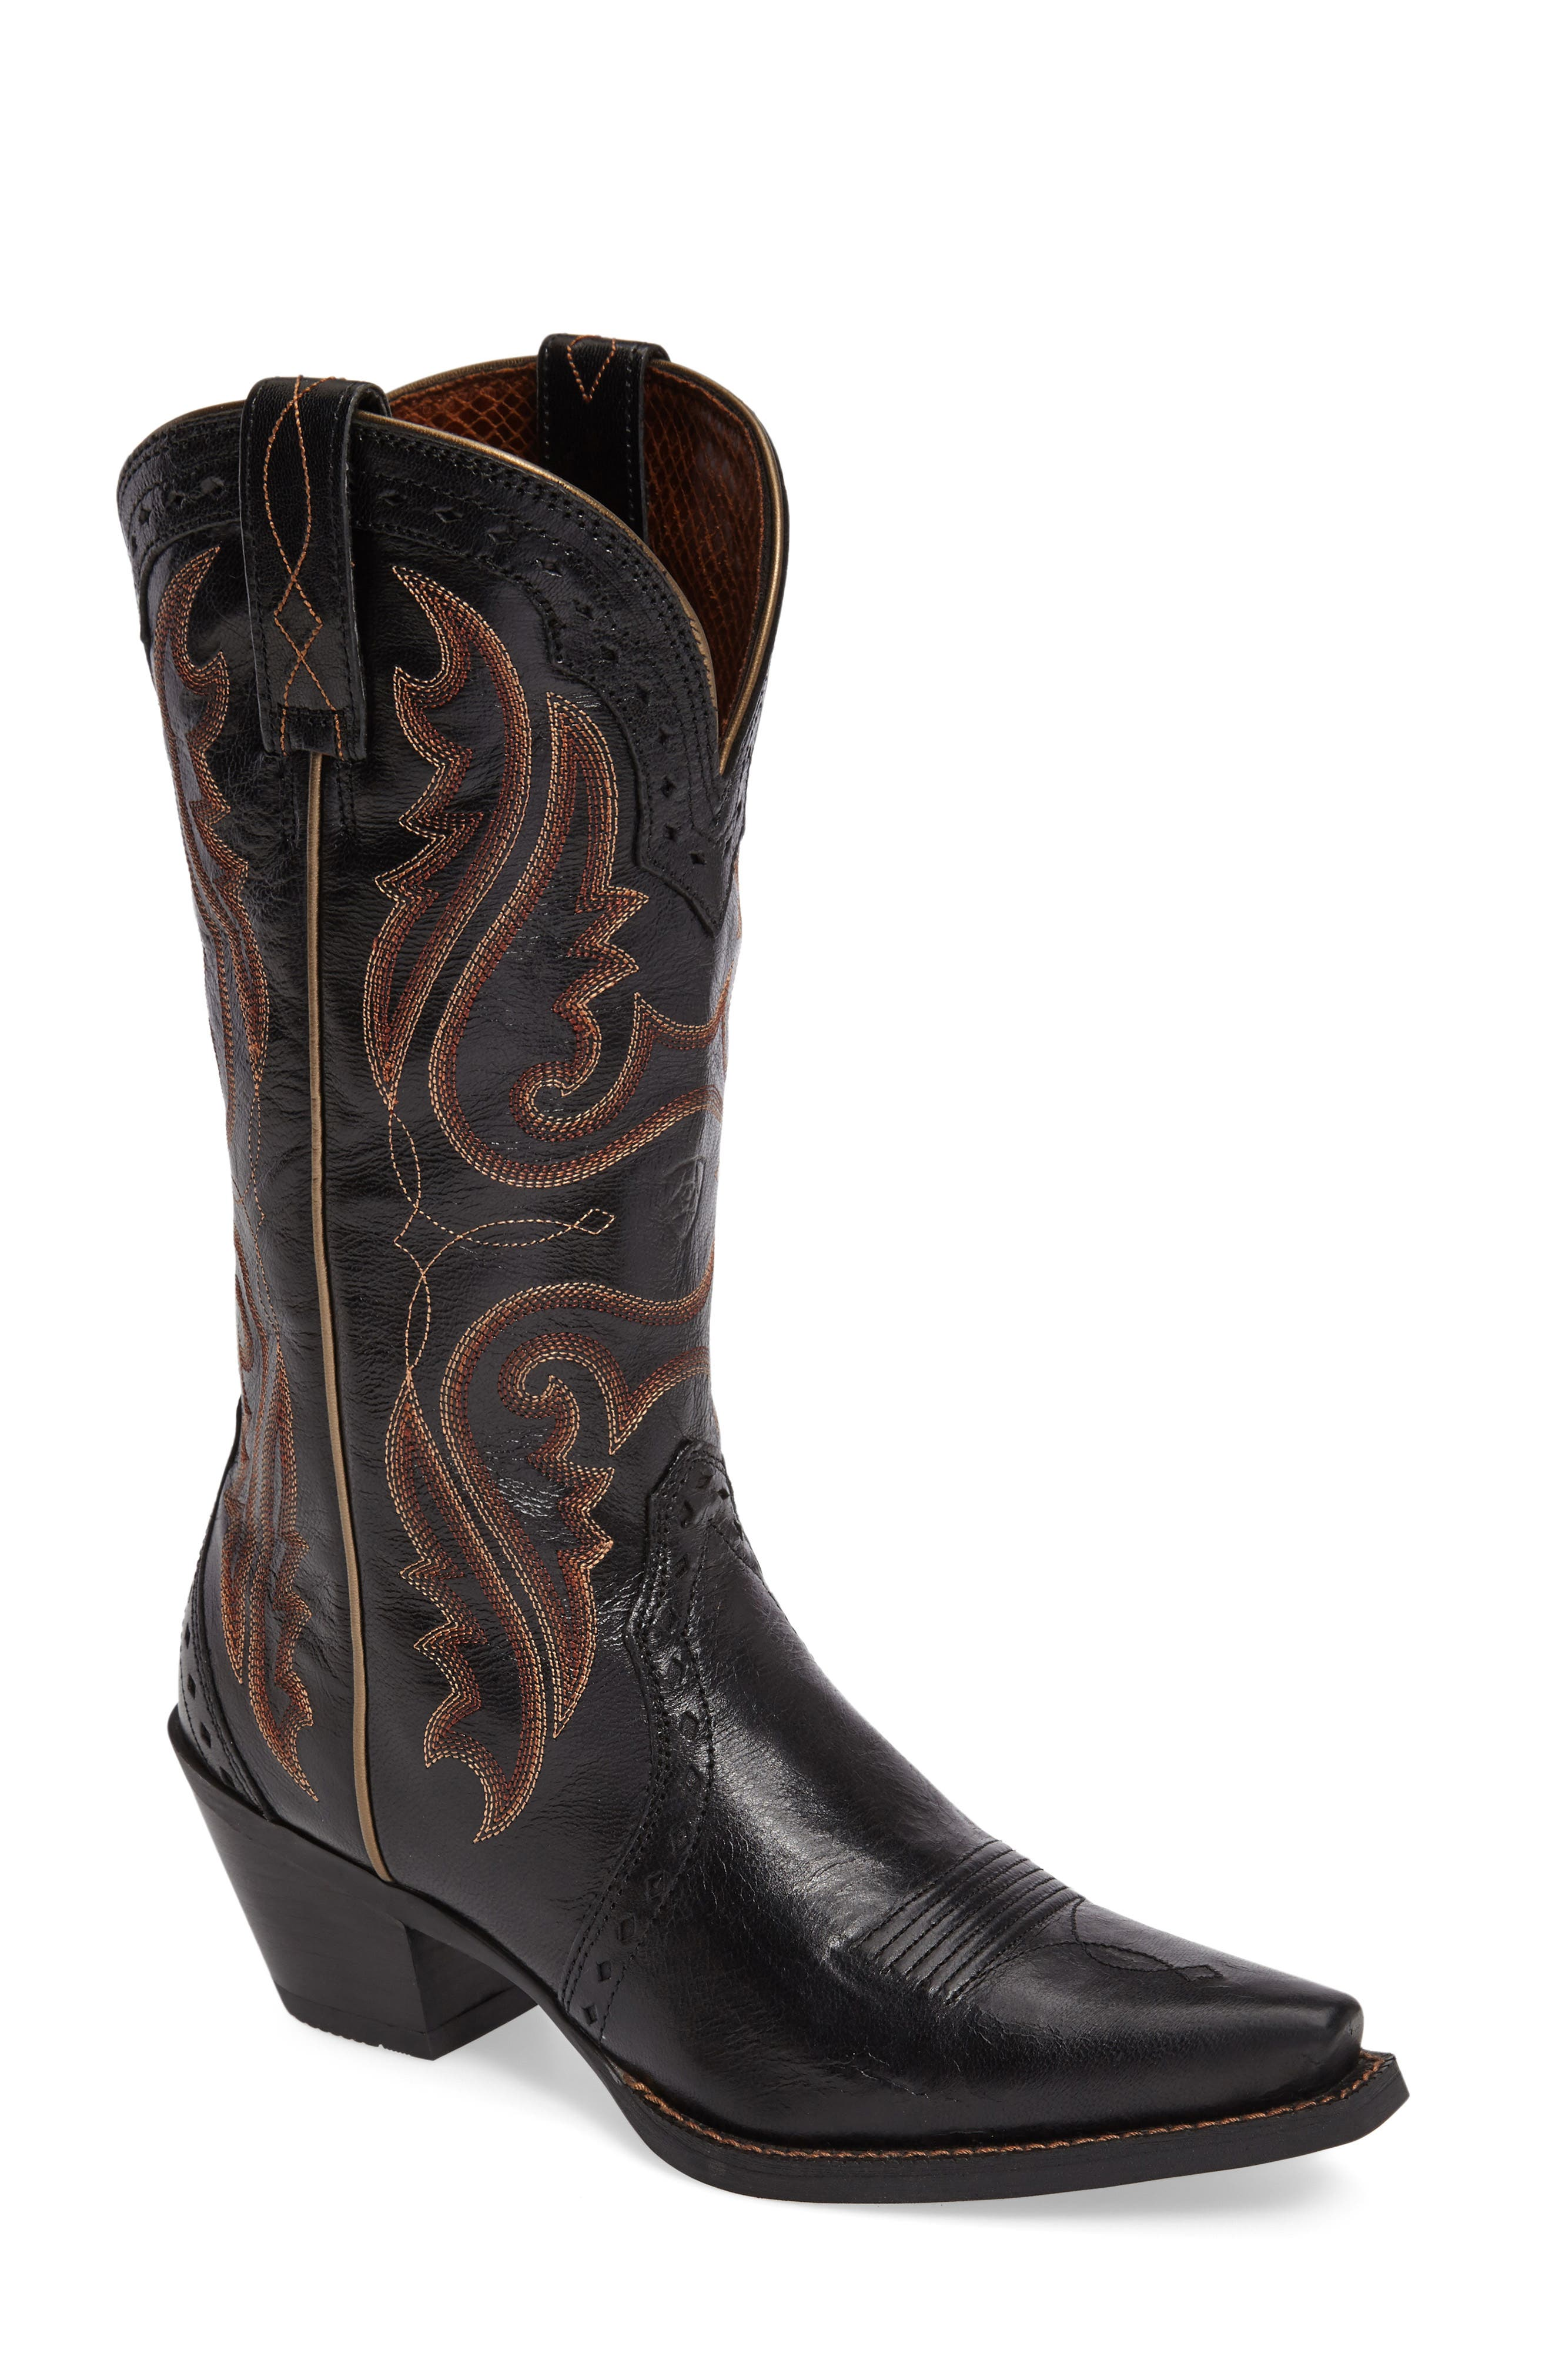 Ariat 'Western Heritage X Toe' Boot